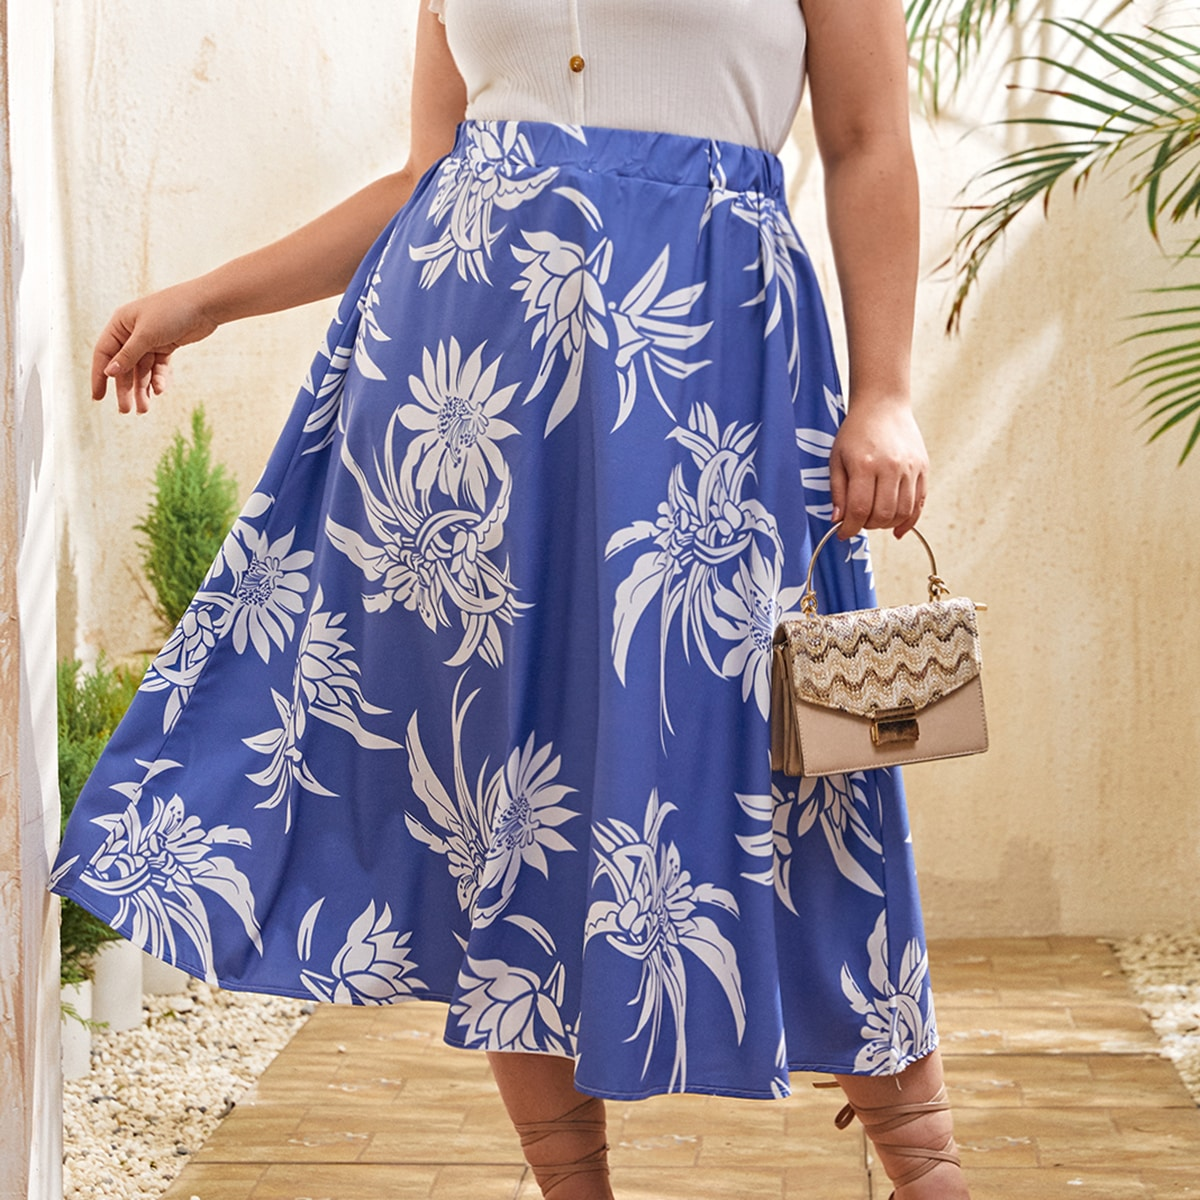 SHEIN / Plus Allover Floral Flare Skirt